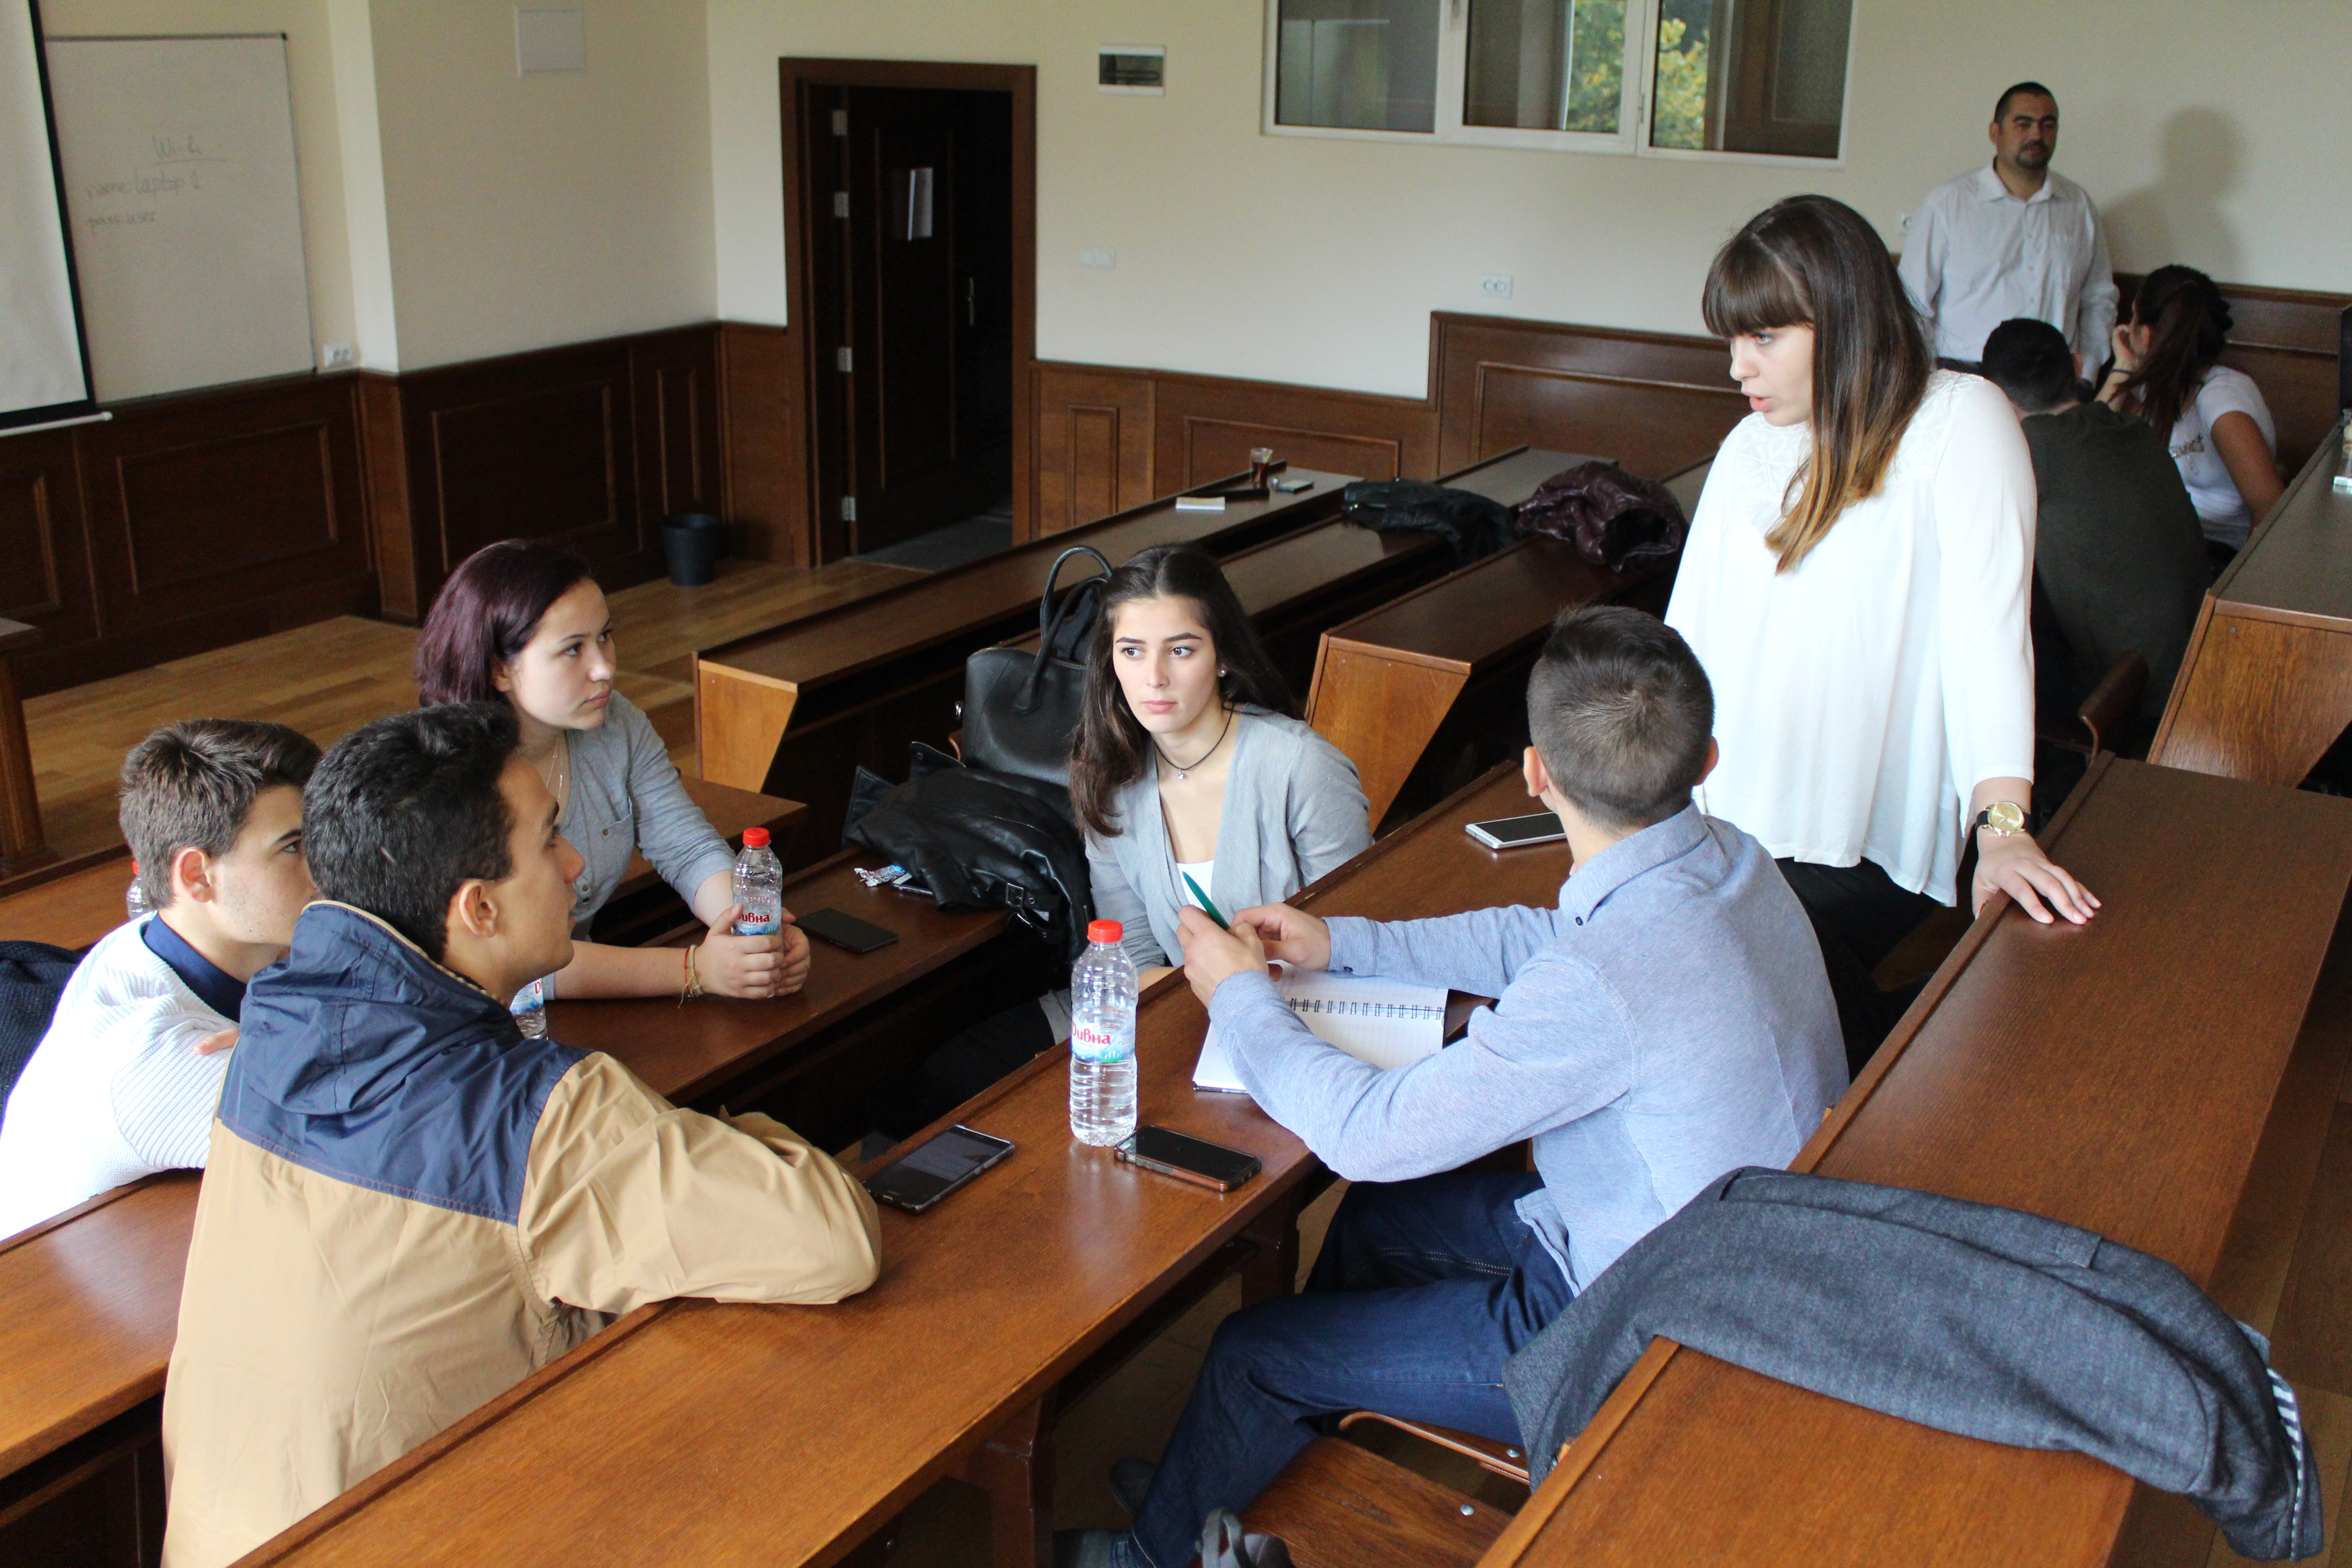 Why Europe Matters: Young Bulgarians speak out - WhyEuropeMatters